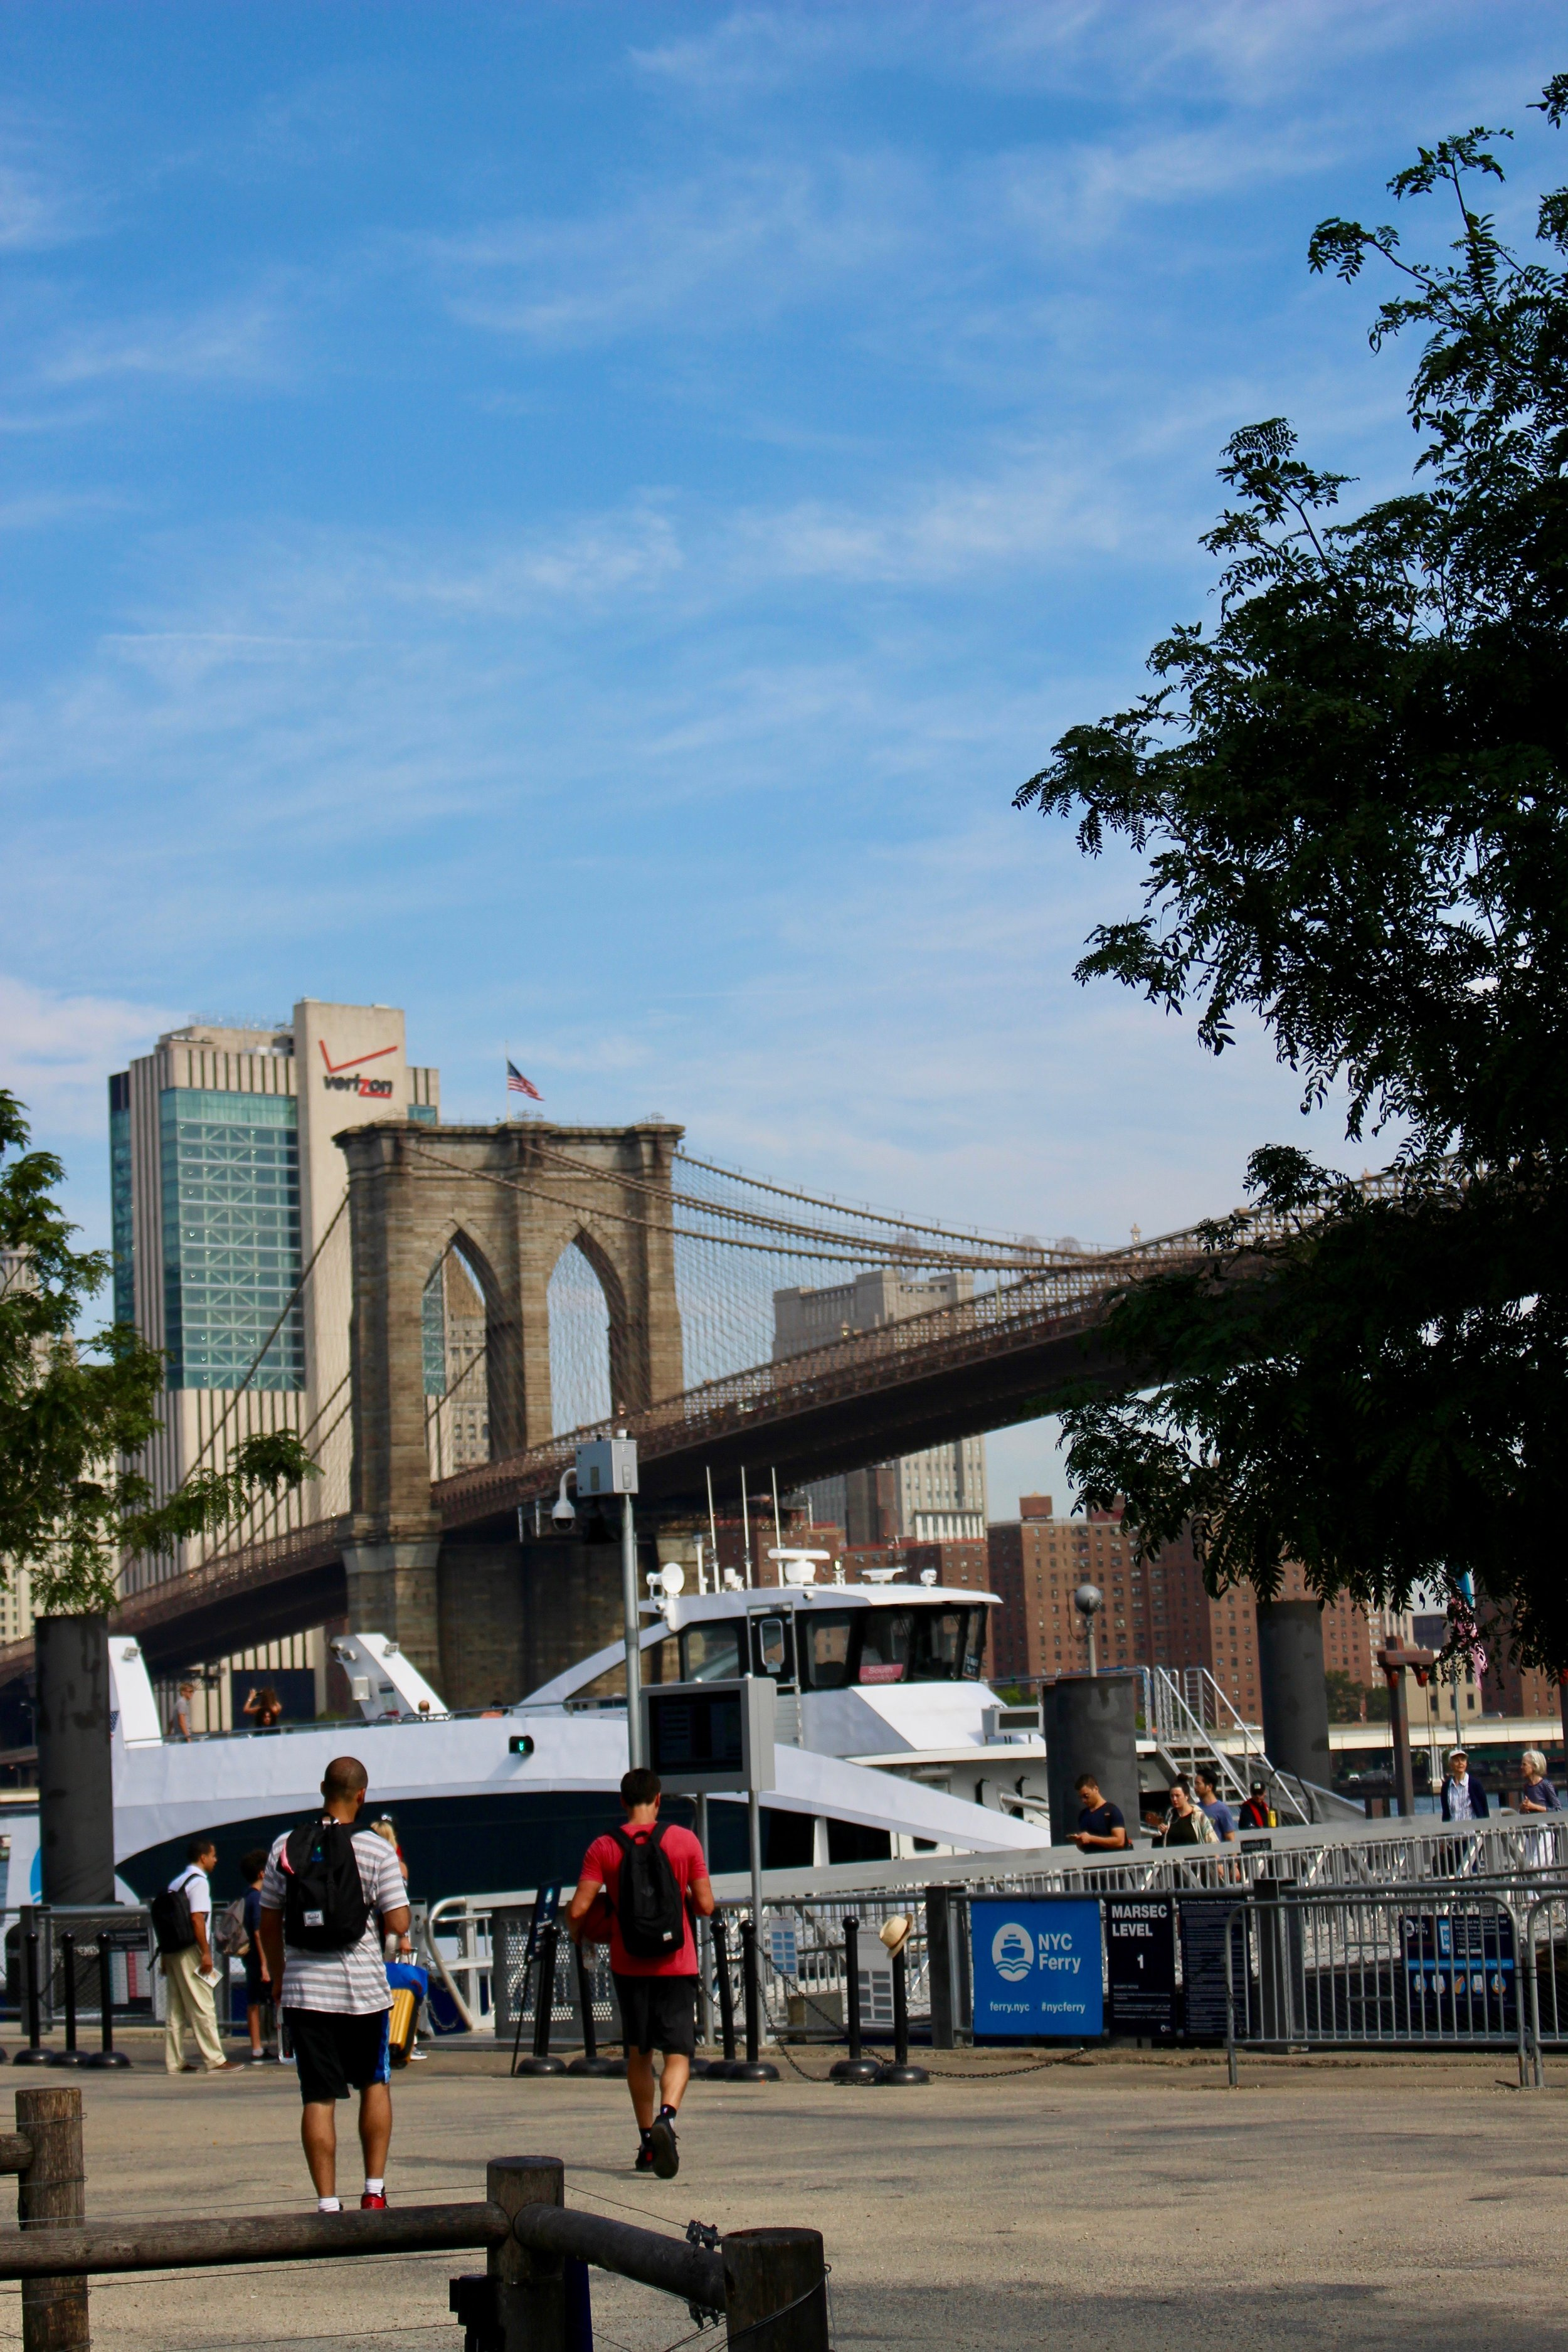 Stepping out of the Park at Old Fulton and Furman Streets, at Pier One. It's the ferry to NYC, a fabulous and easy way to access the City on a beautiful day. Note the Brooklyn Bridge behind the NYC Ferry.